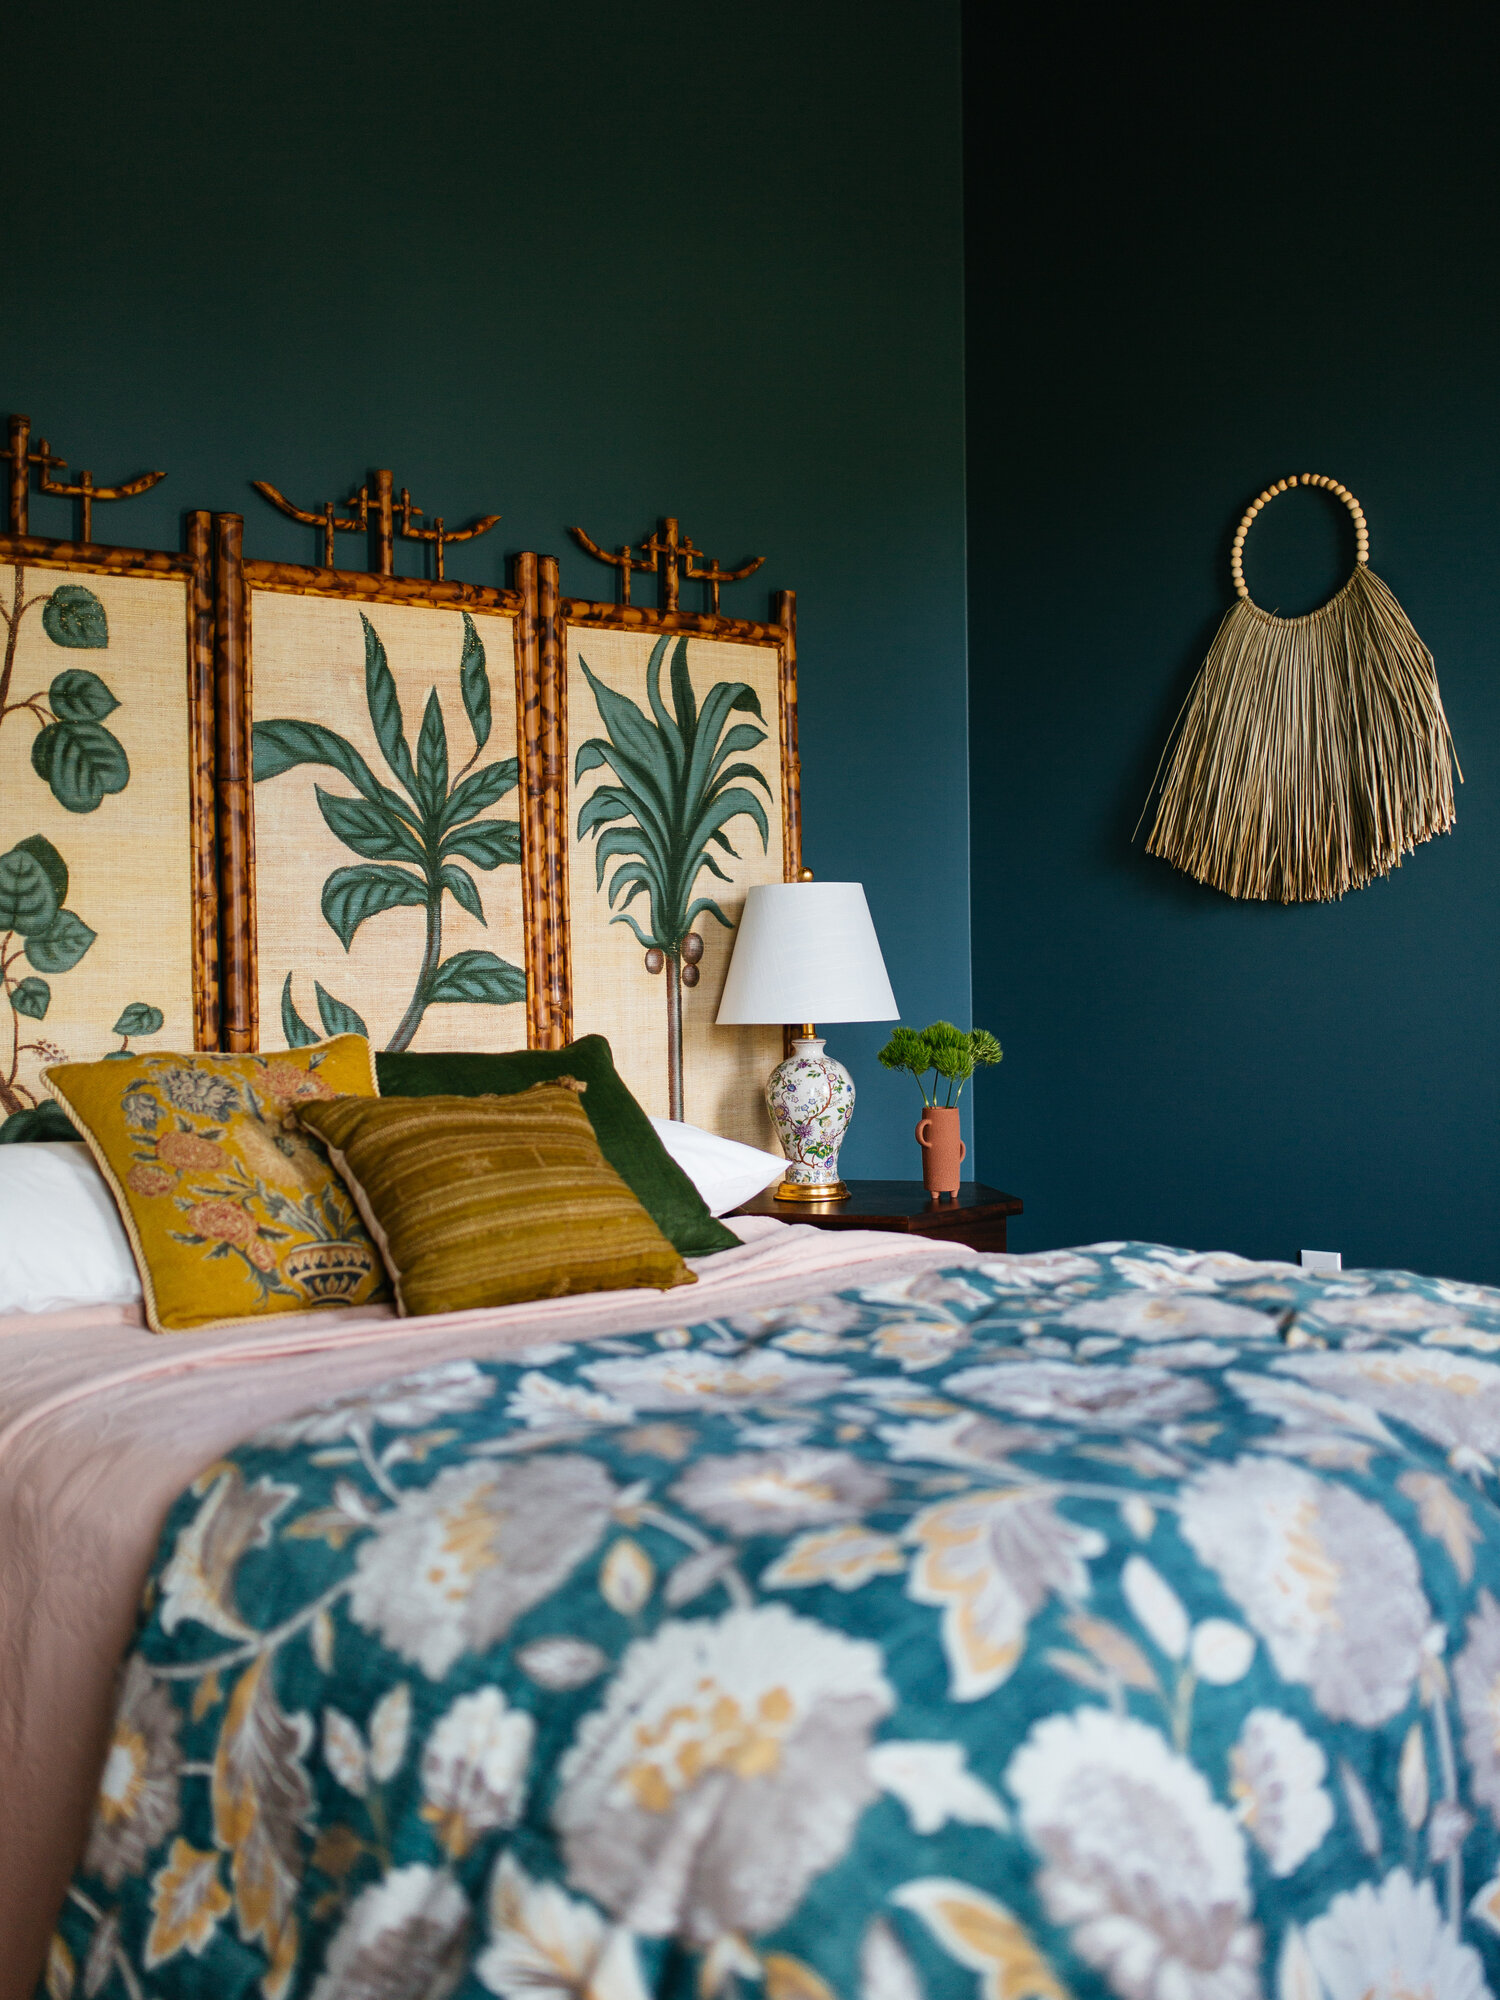 Best Navy and Mustard Bedroom Ideas - Image via Old Brand New, wall color by Behr in 'Juniper Berries'.